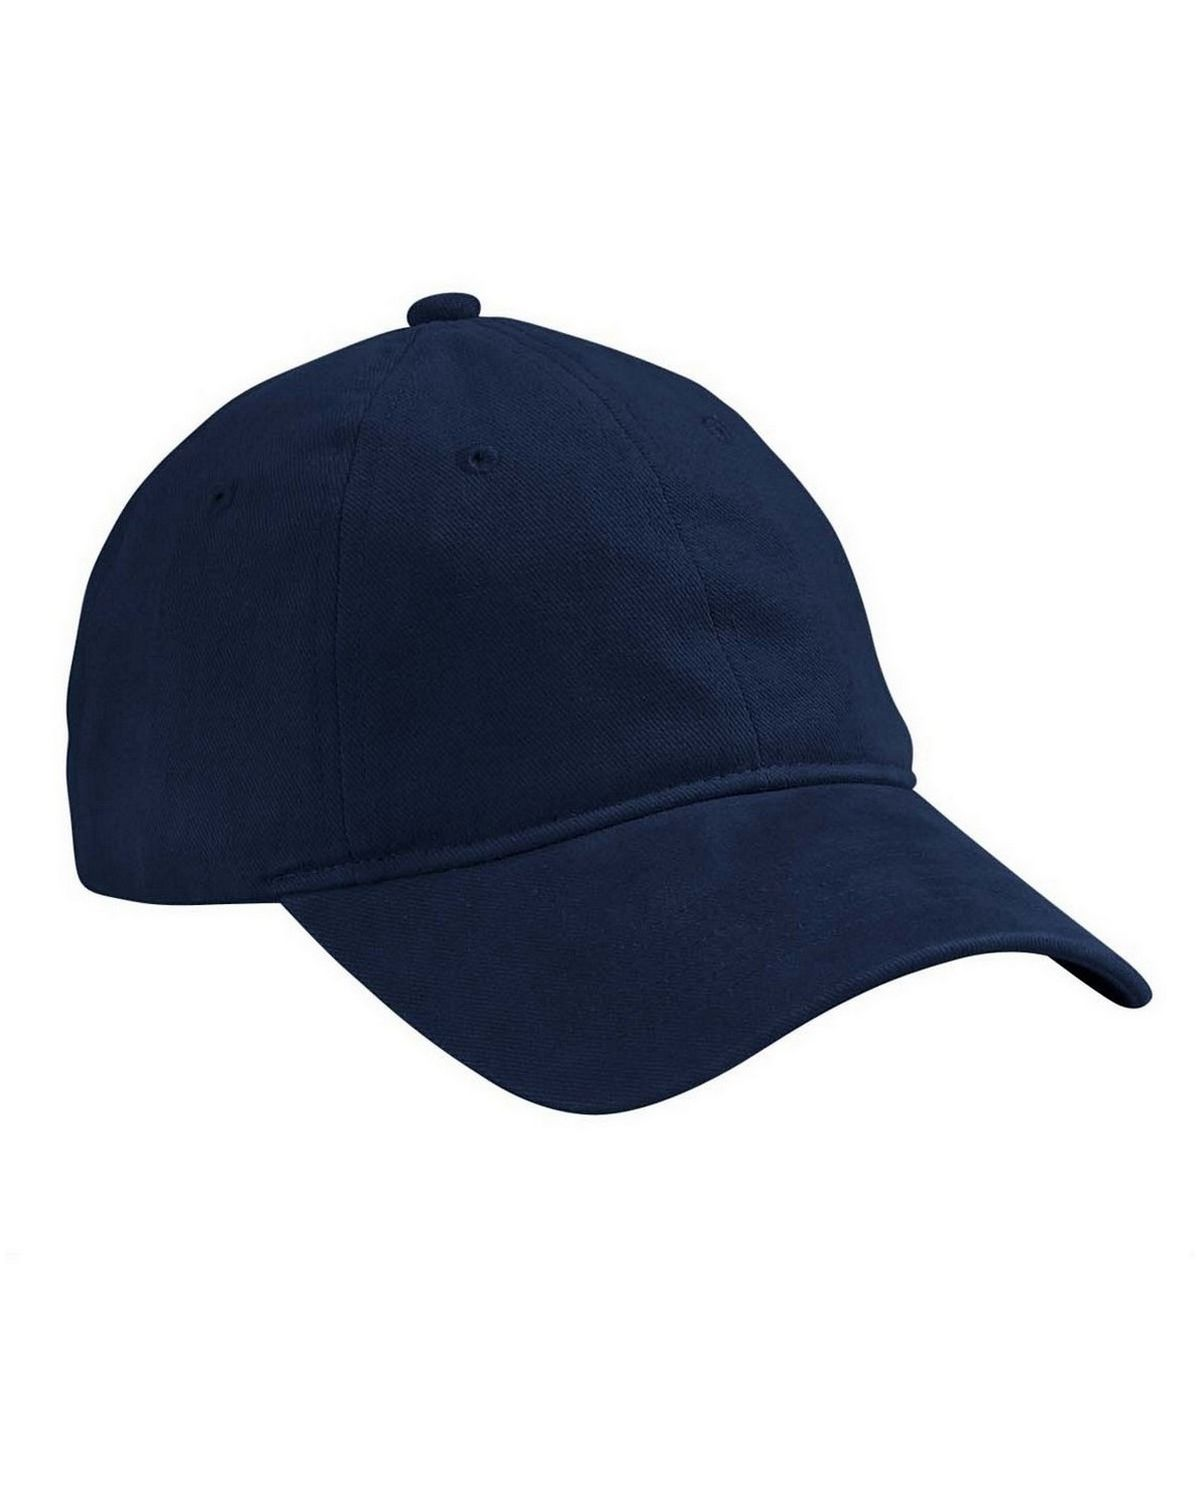 Big Accessories BA511 Heavy Brushed Twill Unstructured Unisex Cap